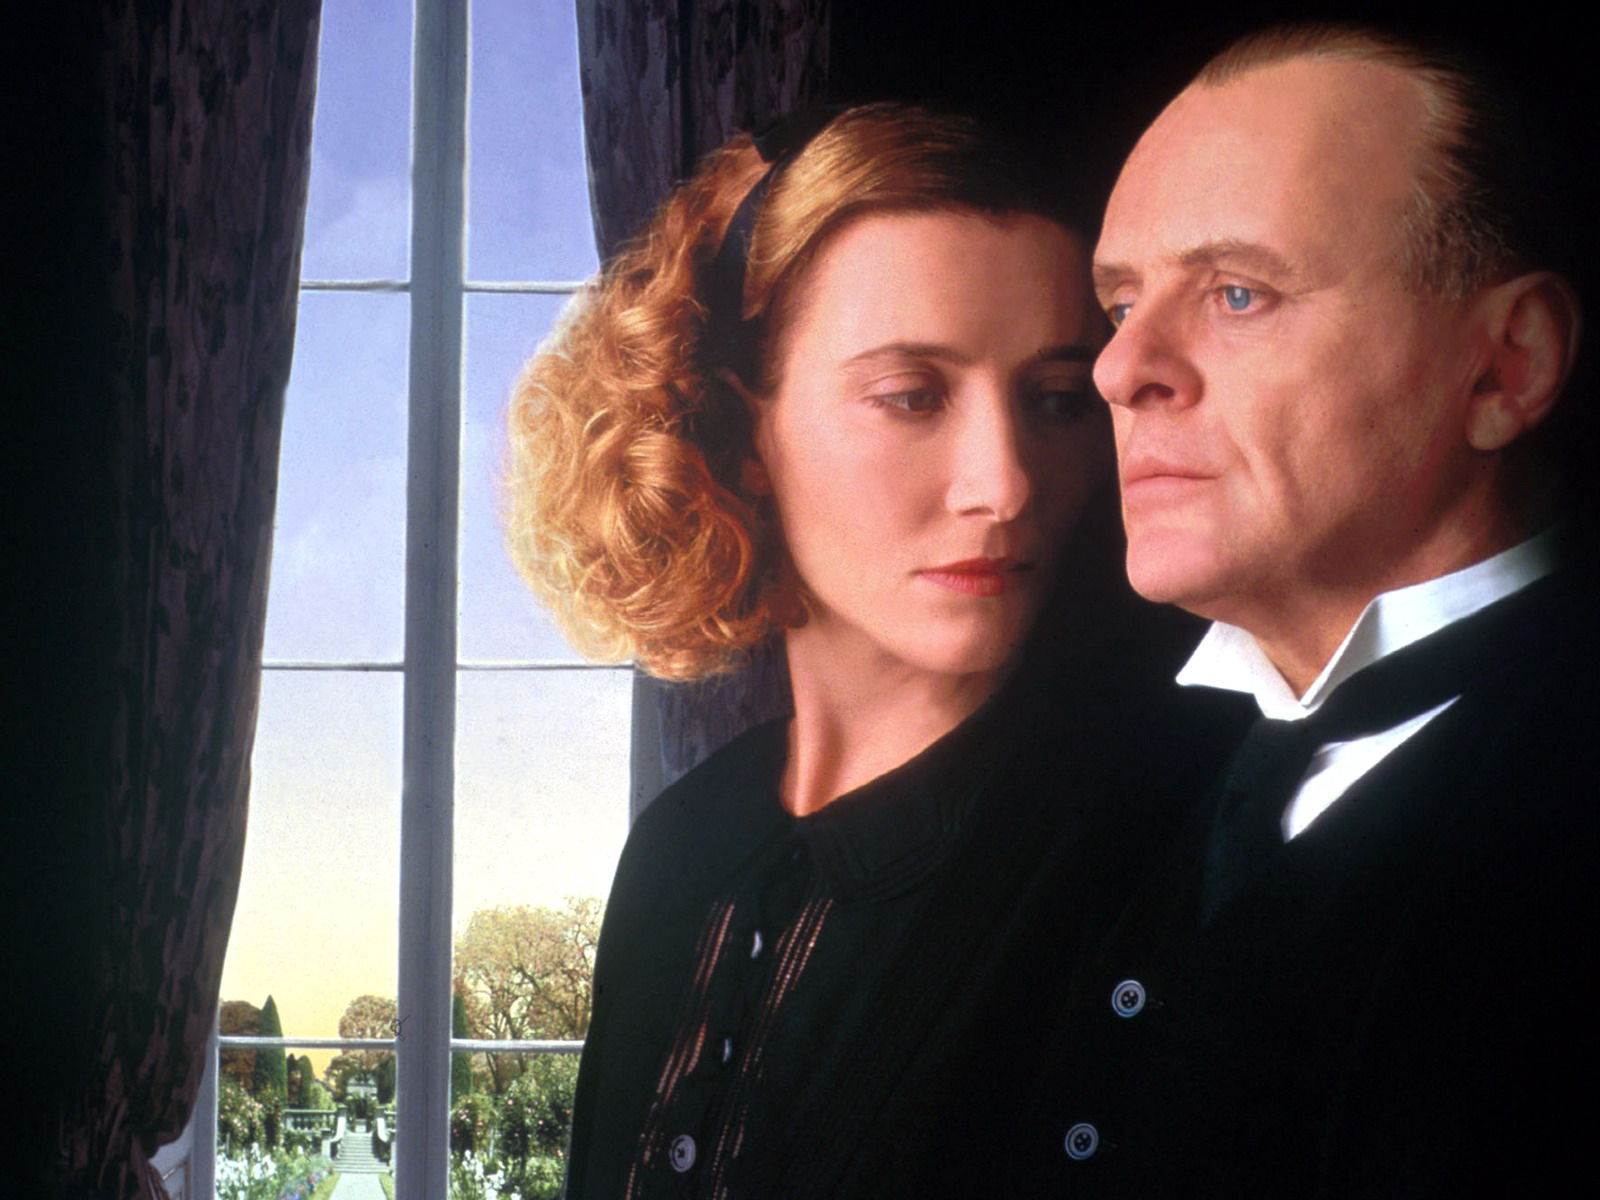 remains of the day essay The remains of the day is a 1993 british-american drama film adapted from the 1989 novel of the same name by kazuo ishiguro it was directed by james ivory and.